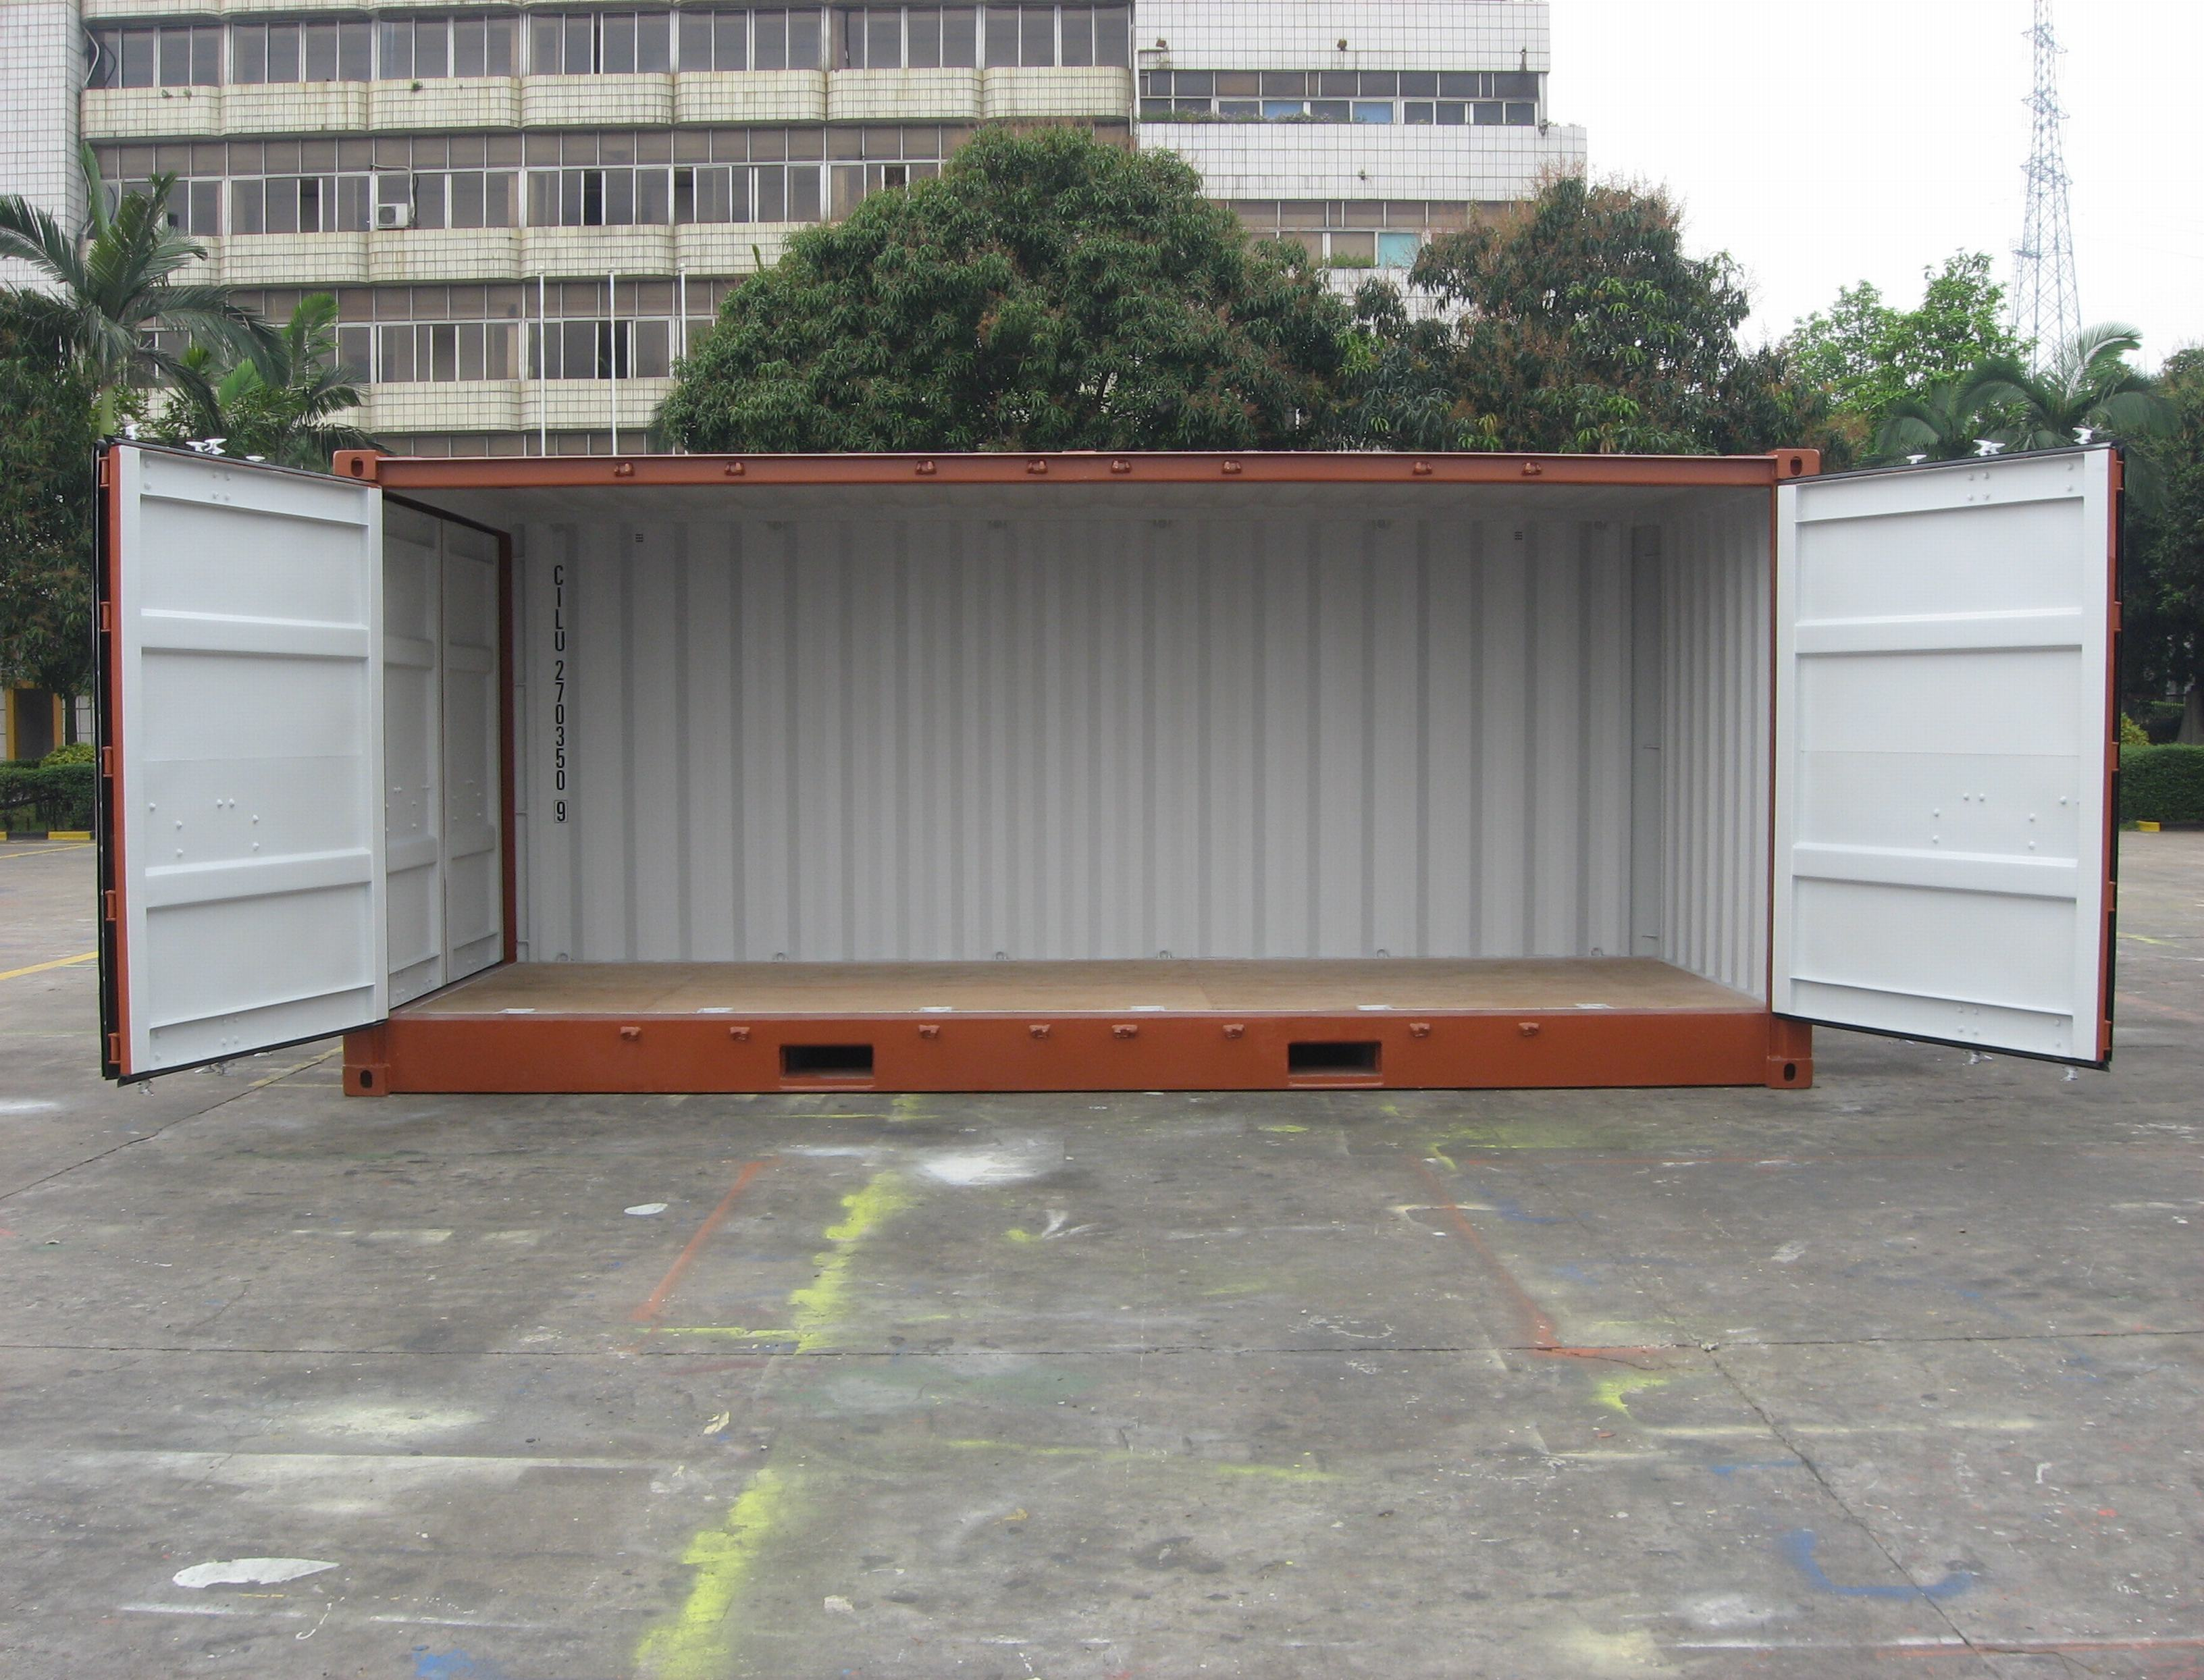 Tremendous Container Umbau Collection Of Side Door Container, Auch Full Side Access